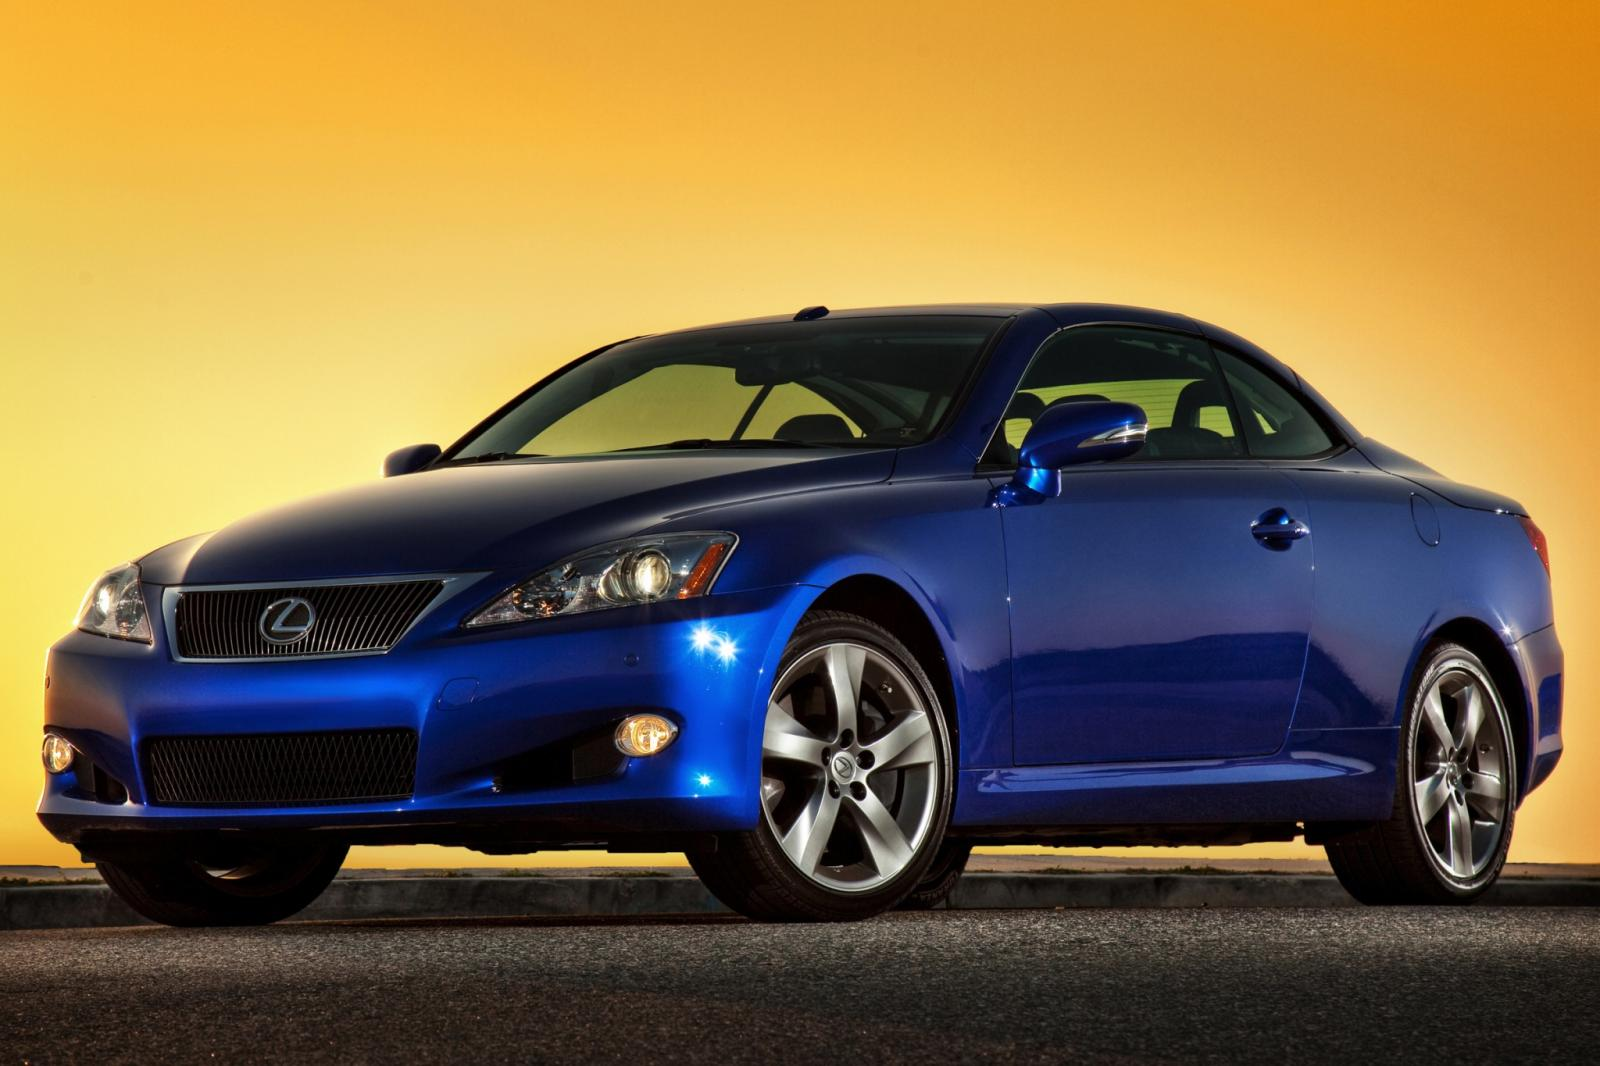 2010 lexus is 350 c information and photos zombiedrive. Black Bedroom Furniture Sets. Home Design Ideas